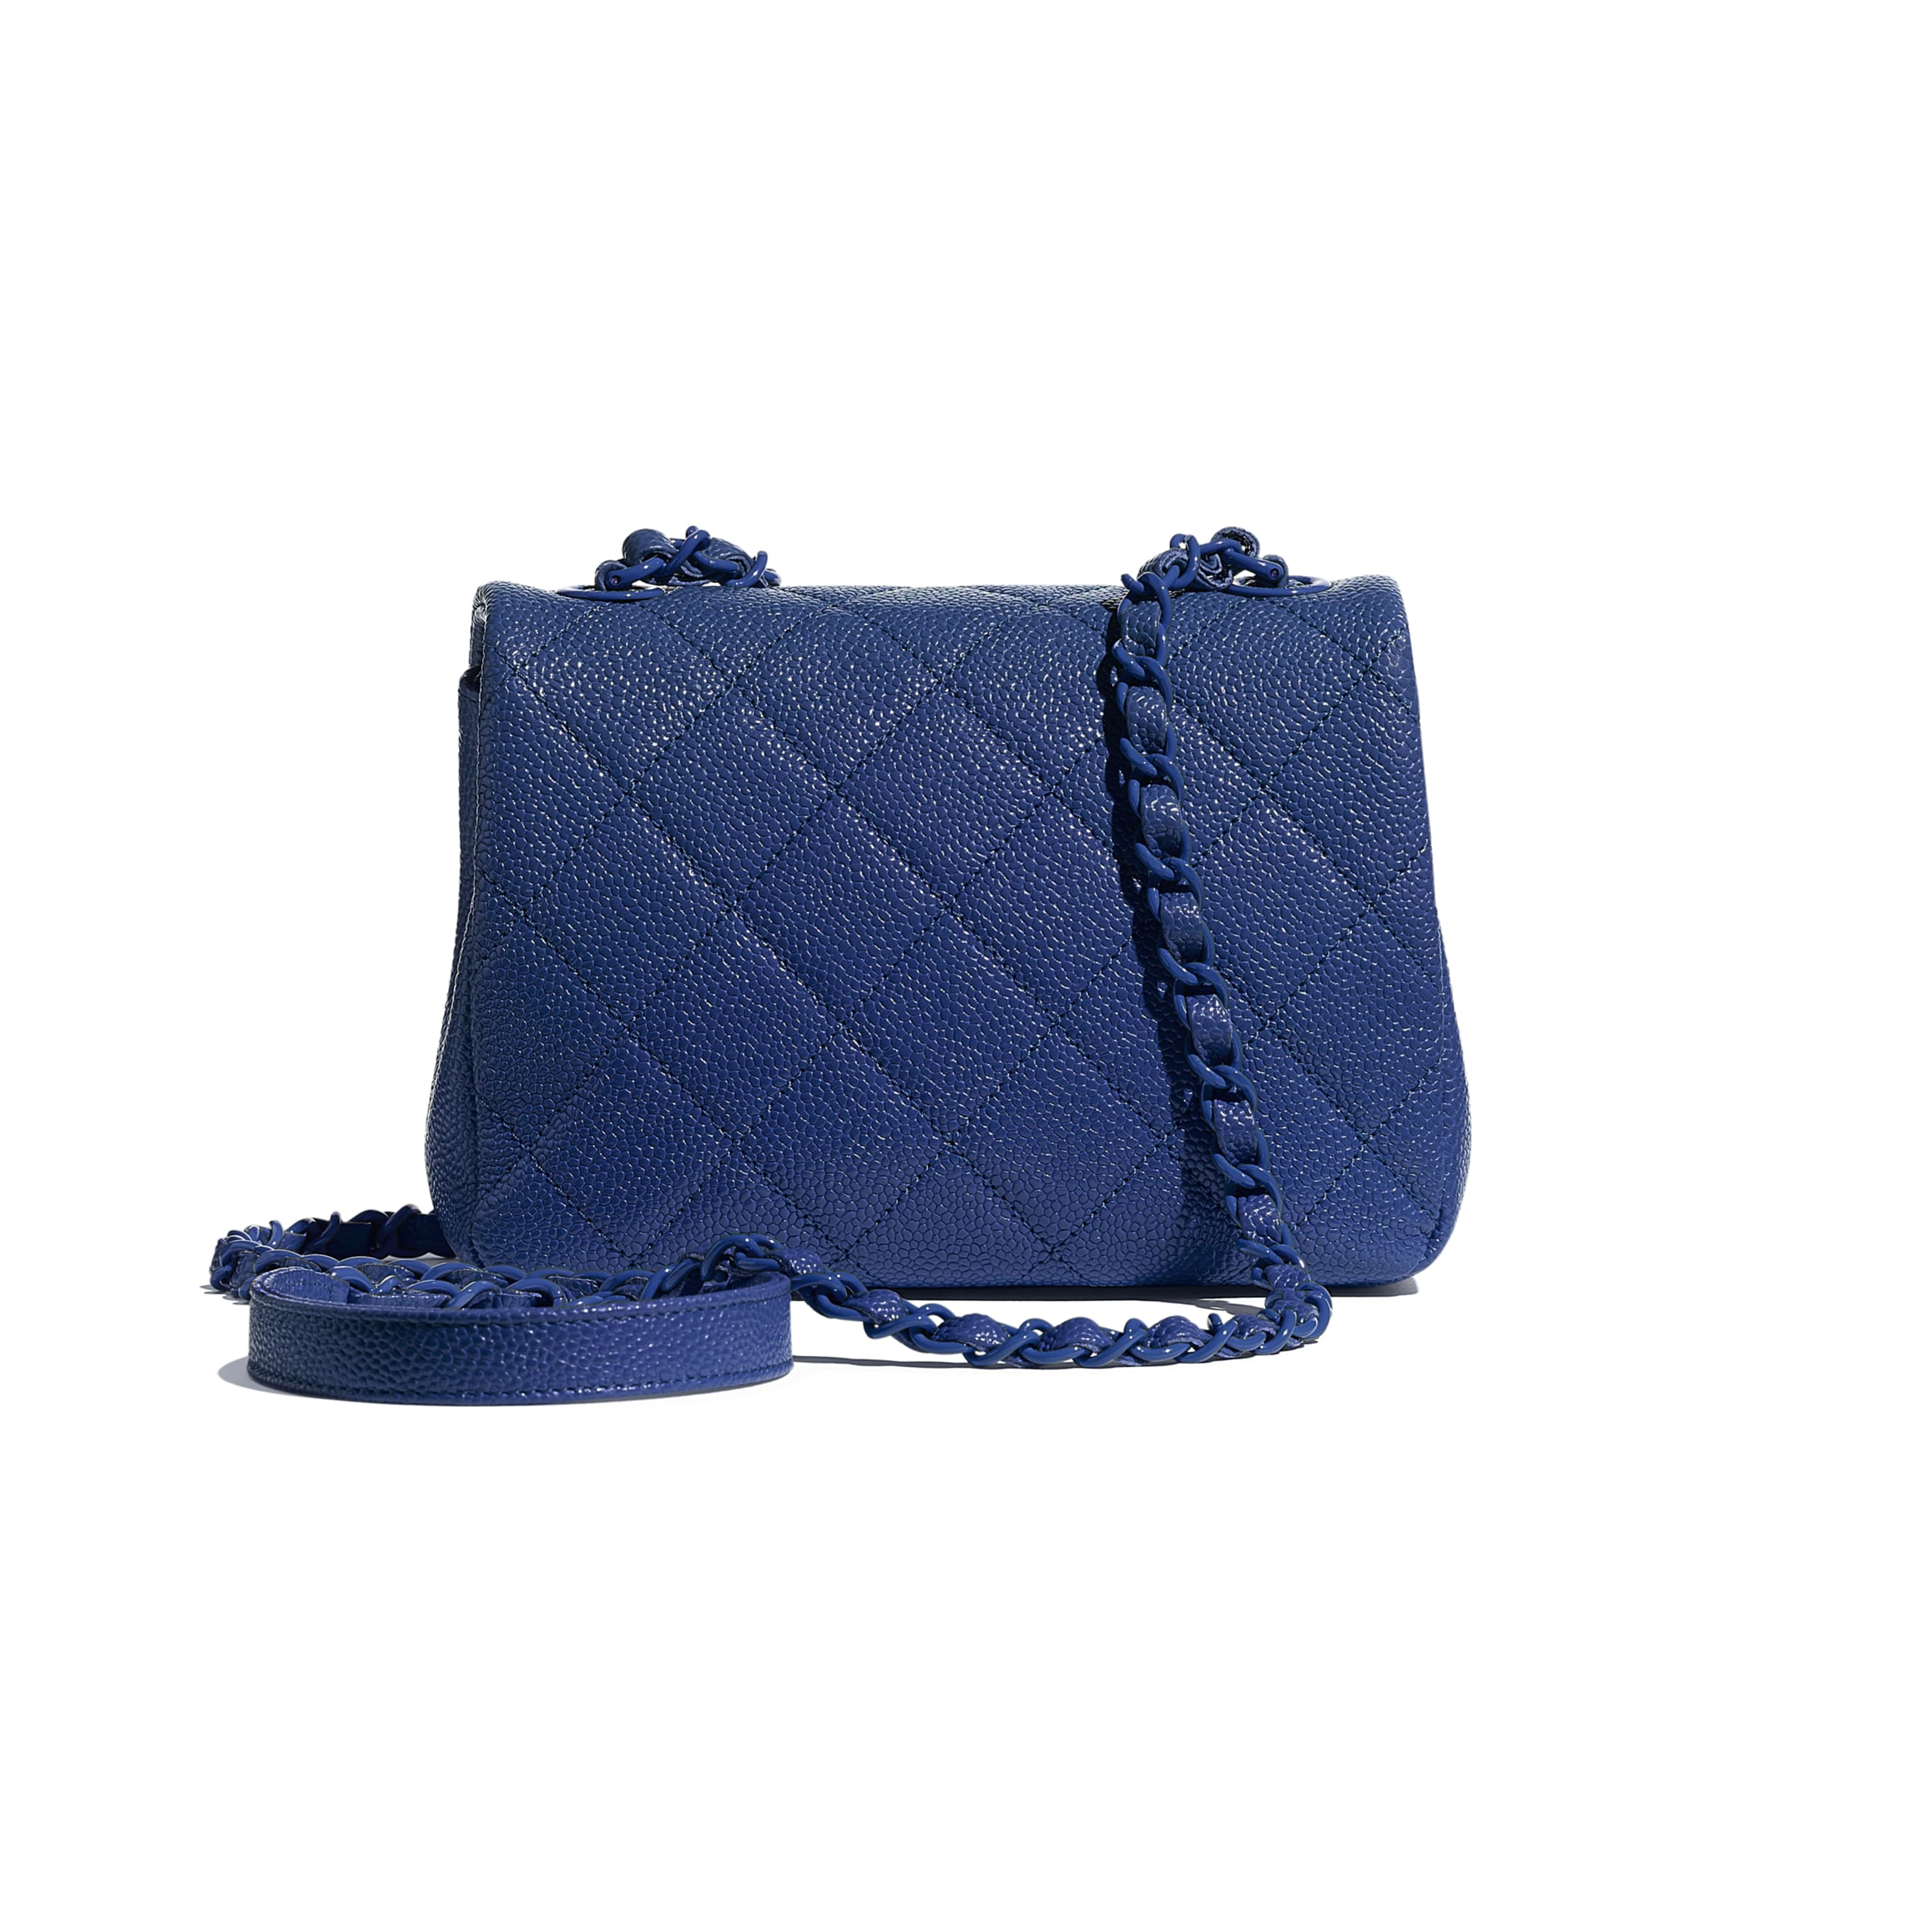 Flap Bag - Dark Blue - Grained Calfskin & Lacquered Metal - Alternative view - see standard sized version